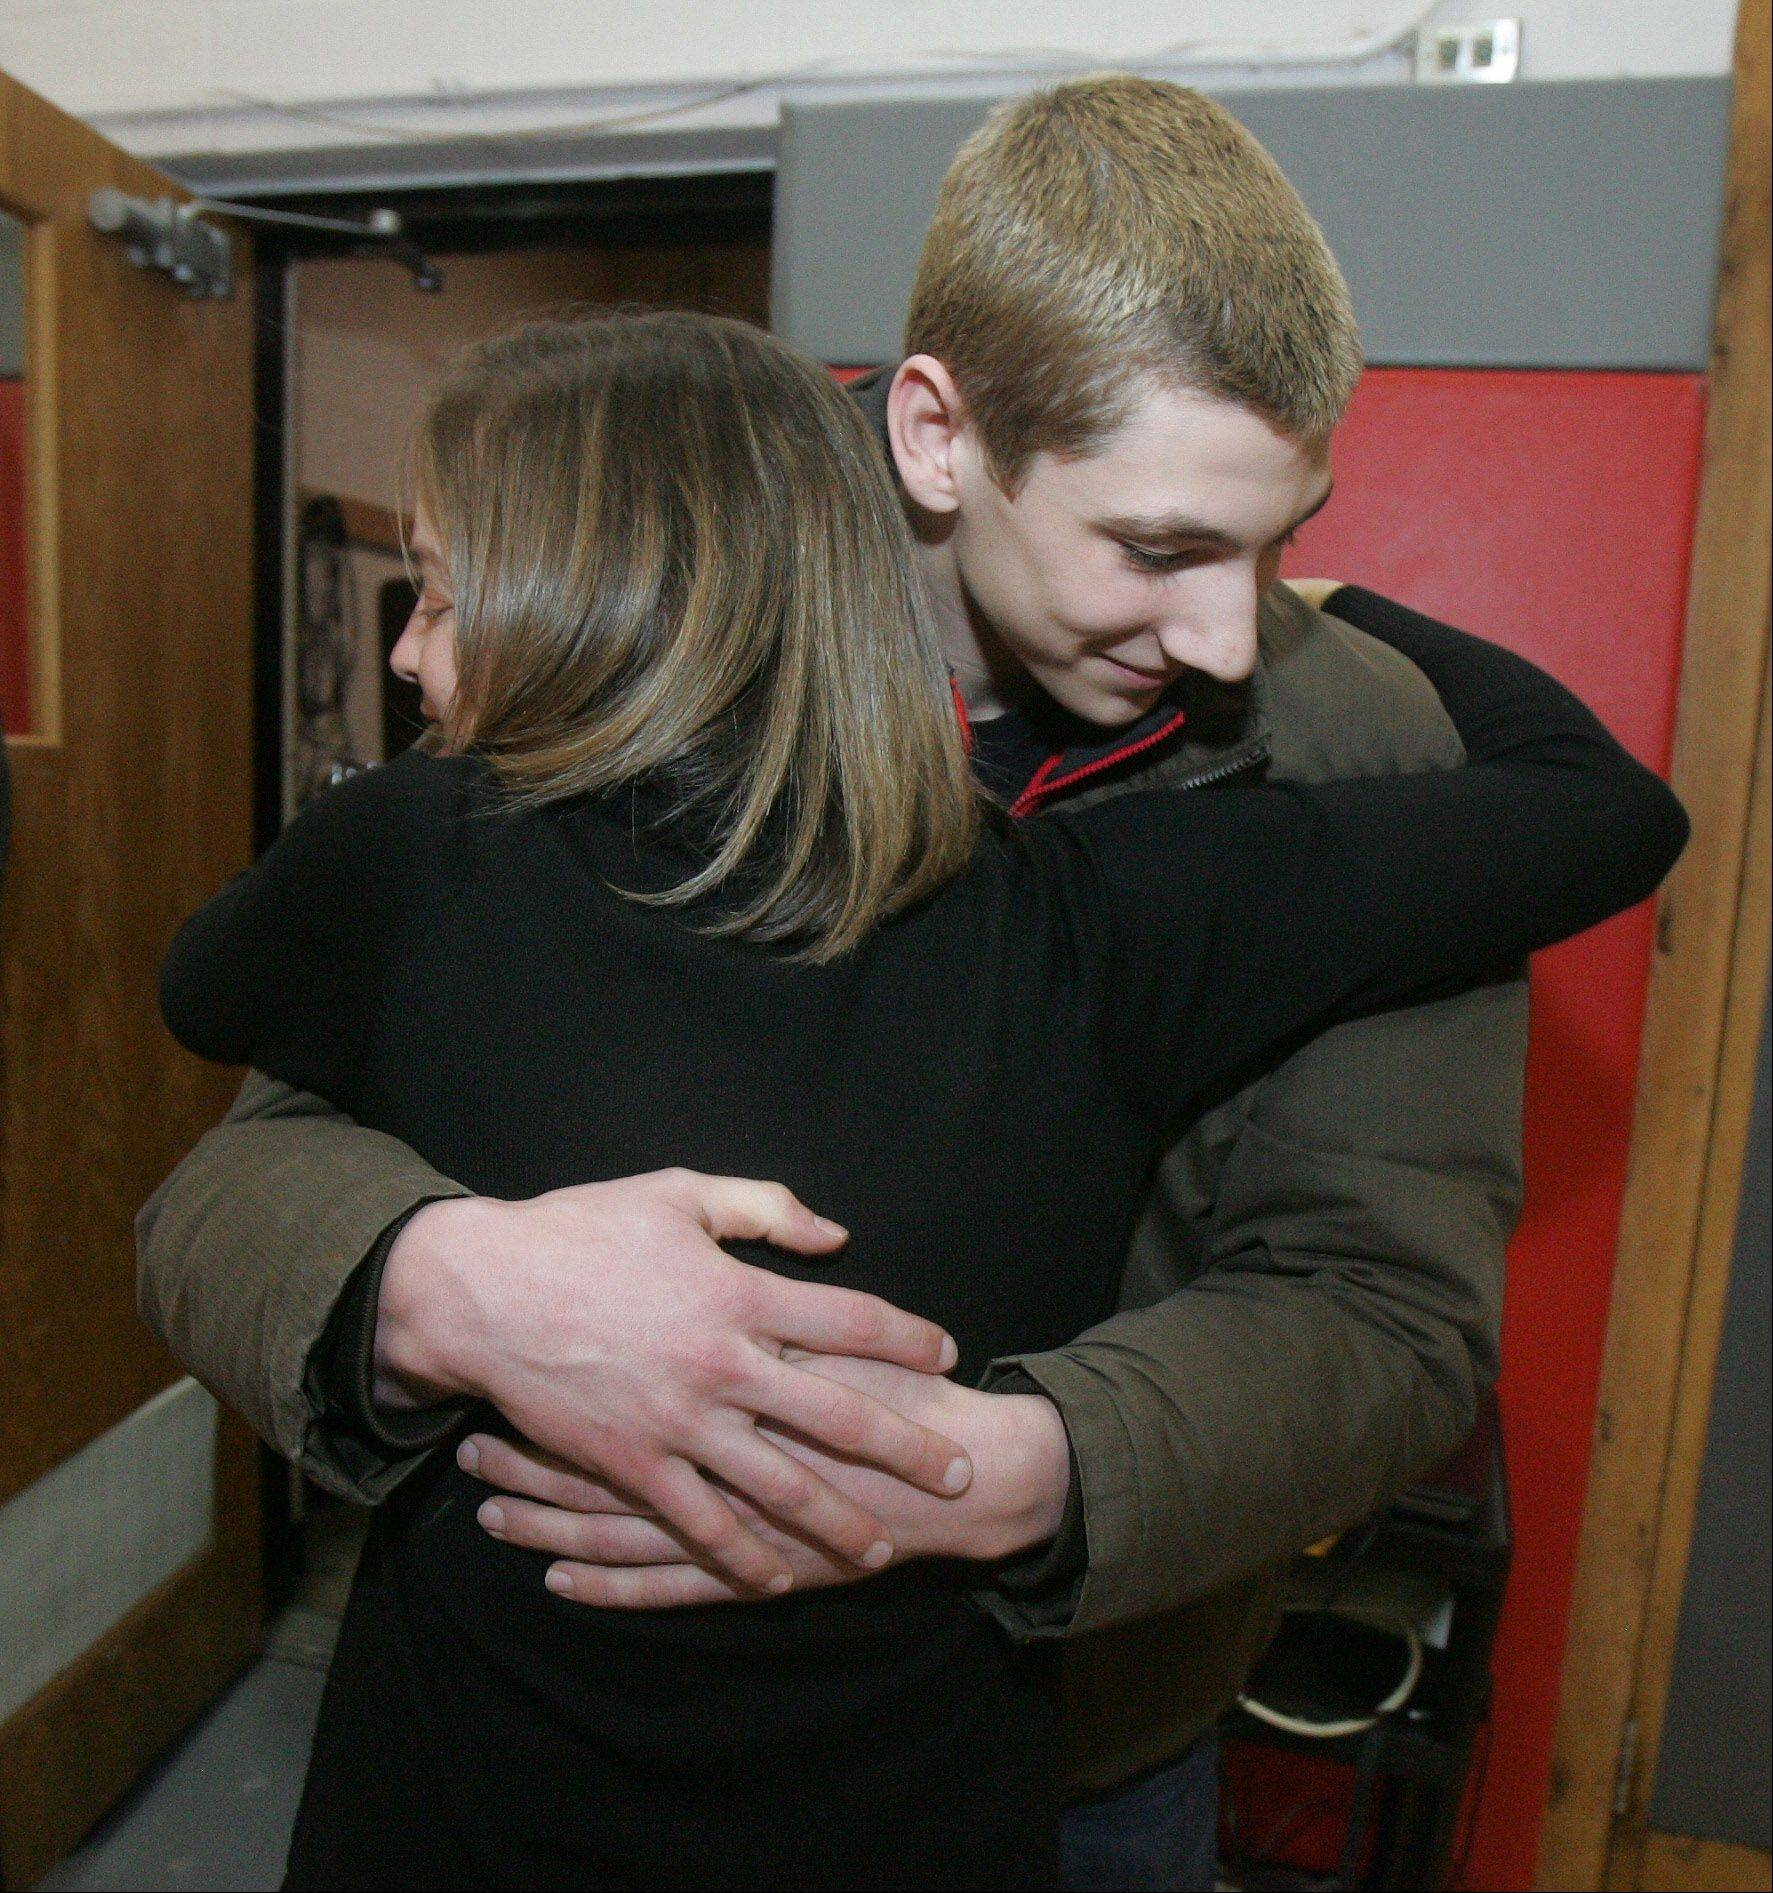 Principal Lauren Fagel hugs swimmer Connor Black who was honored at an all-school assembly Wednesday at Mundelein High School after he broke state and national records at the state swimming tournament. Connor set a state record in the 50 freestyle and broke state and national records in the 100 butterfly.